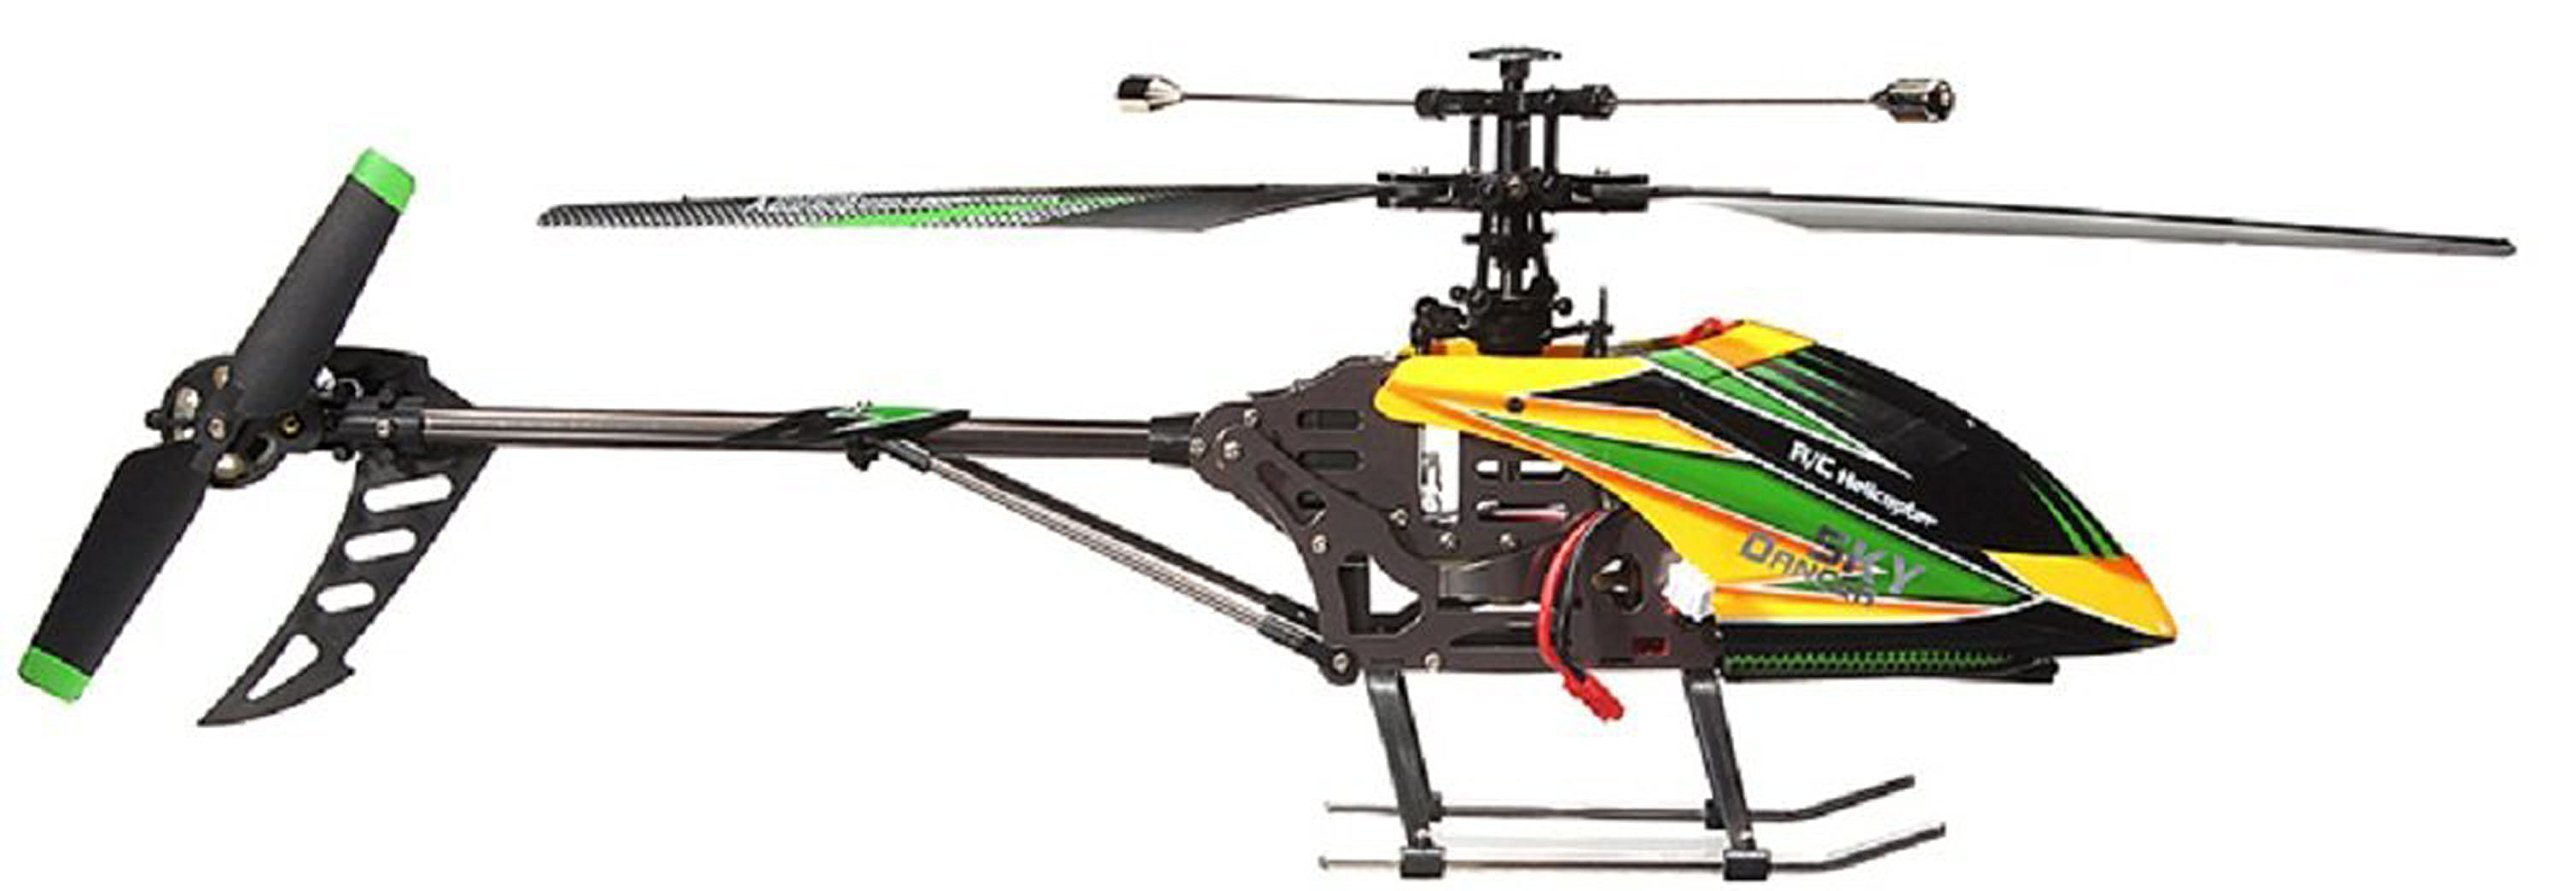 Large Rc Helicopter Top Deals & Lowest Price | SuperOffers com